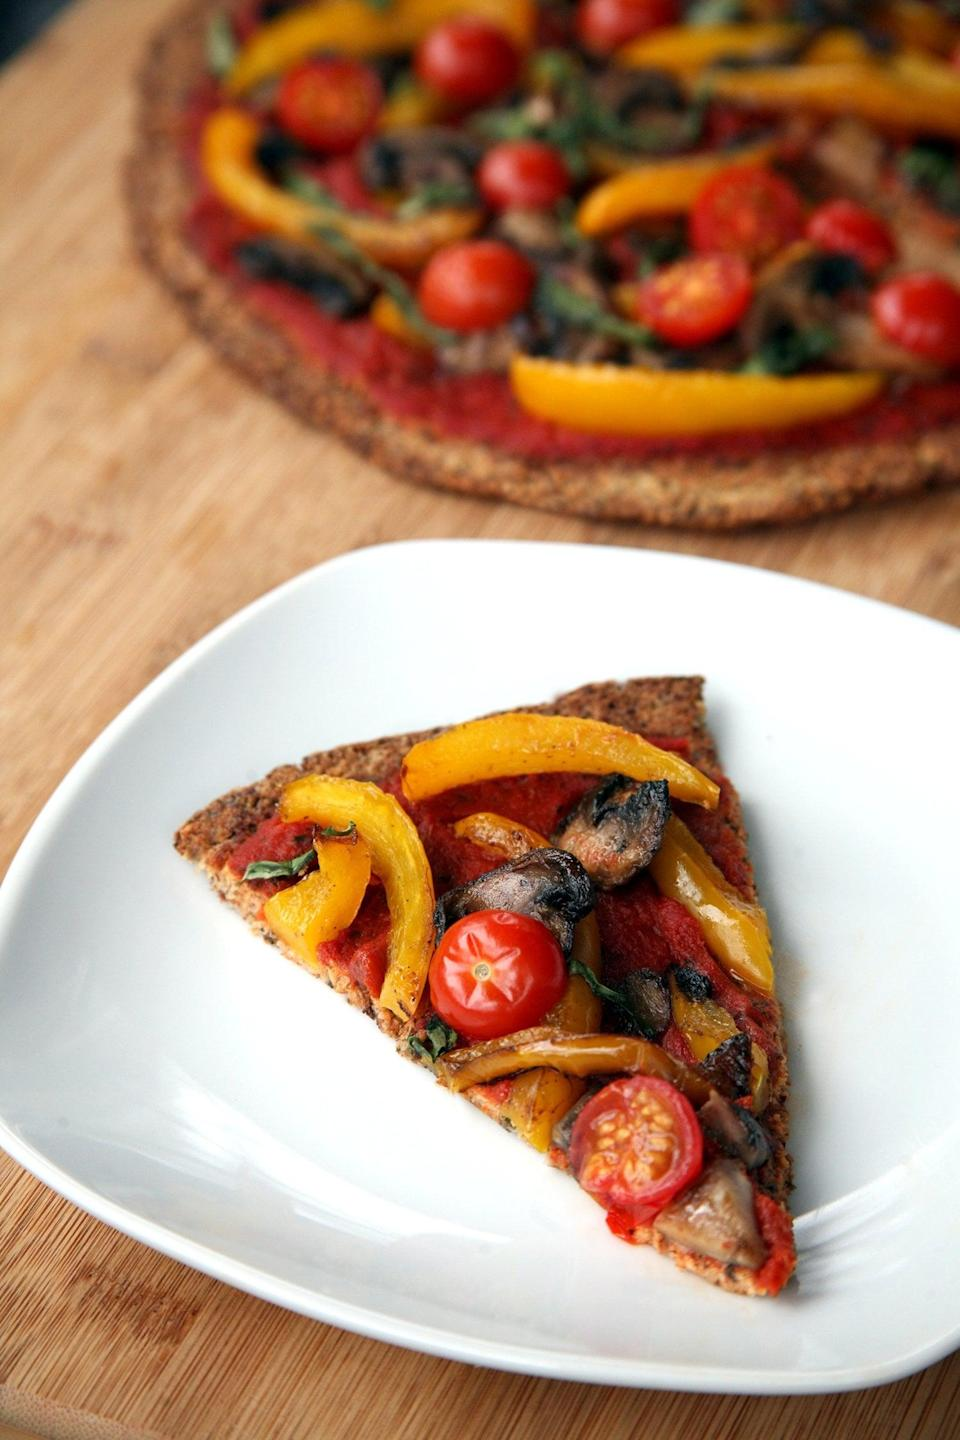 """<p>Now you can have cauliflower crust made without mozzarella or eggs, and this one is just as easy to make.</p> <p><strong>Get the recipe:</strong> <a href=""""https://www.popsugar.com/fitness/Vegan-Cauliflower-Pizza-Crust-41168545"""" class=""""link rapid-noclick-resp"""" rel=""""nofollow noopener"""" target=""""_blank"""" data-ylk=""""slk:vegan cauliflower pizza crust"""">vegan cauliflower pizza crust</a></p>"""